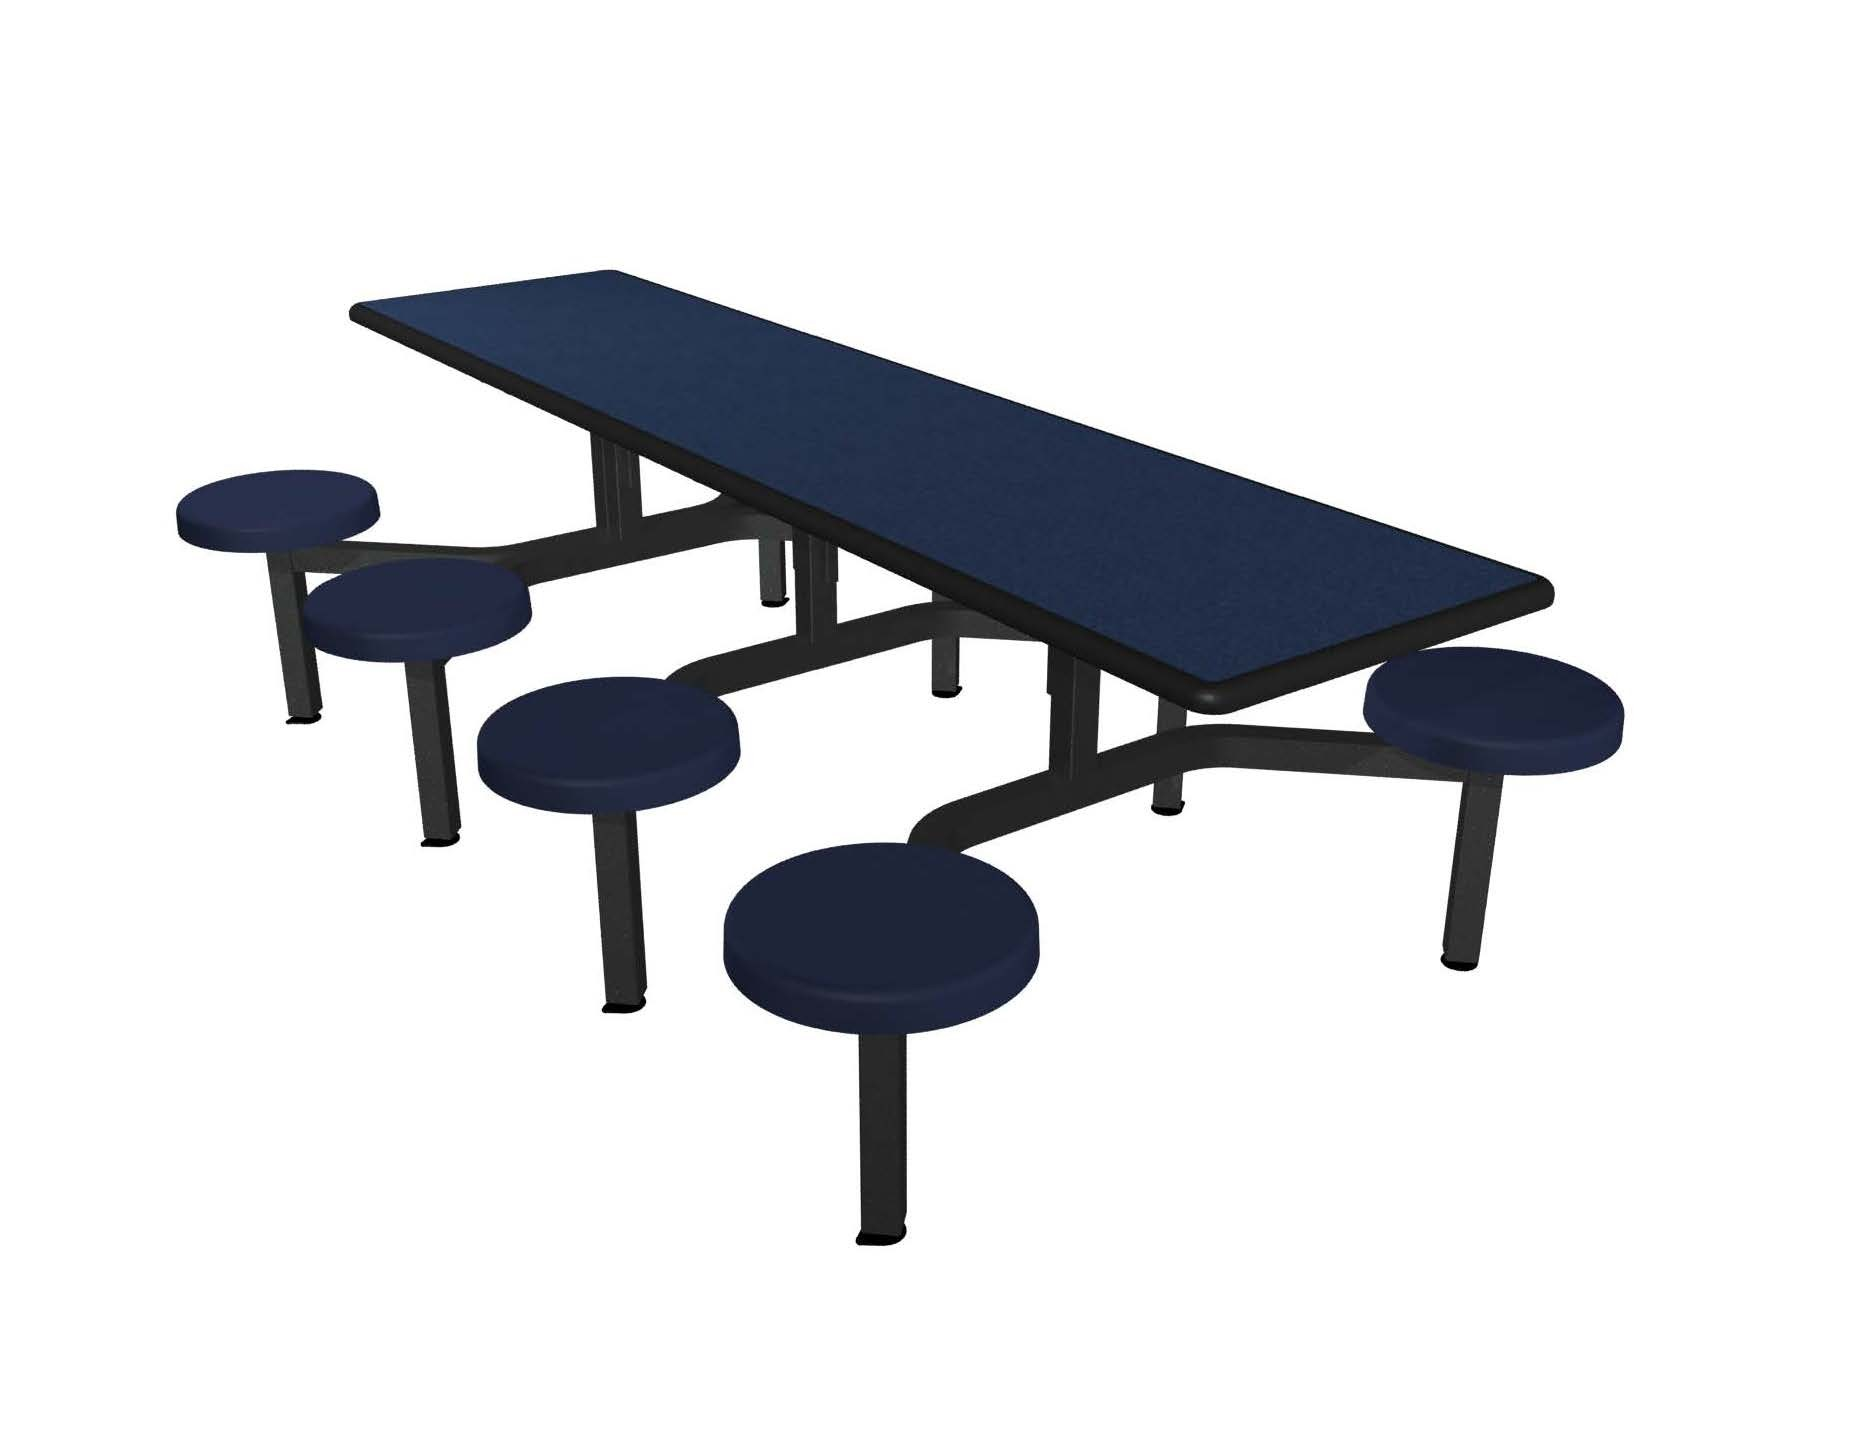 Navy Legacy laminate table top, Black Dur-A-Edge®, Navy Blue composite button seat